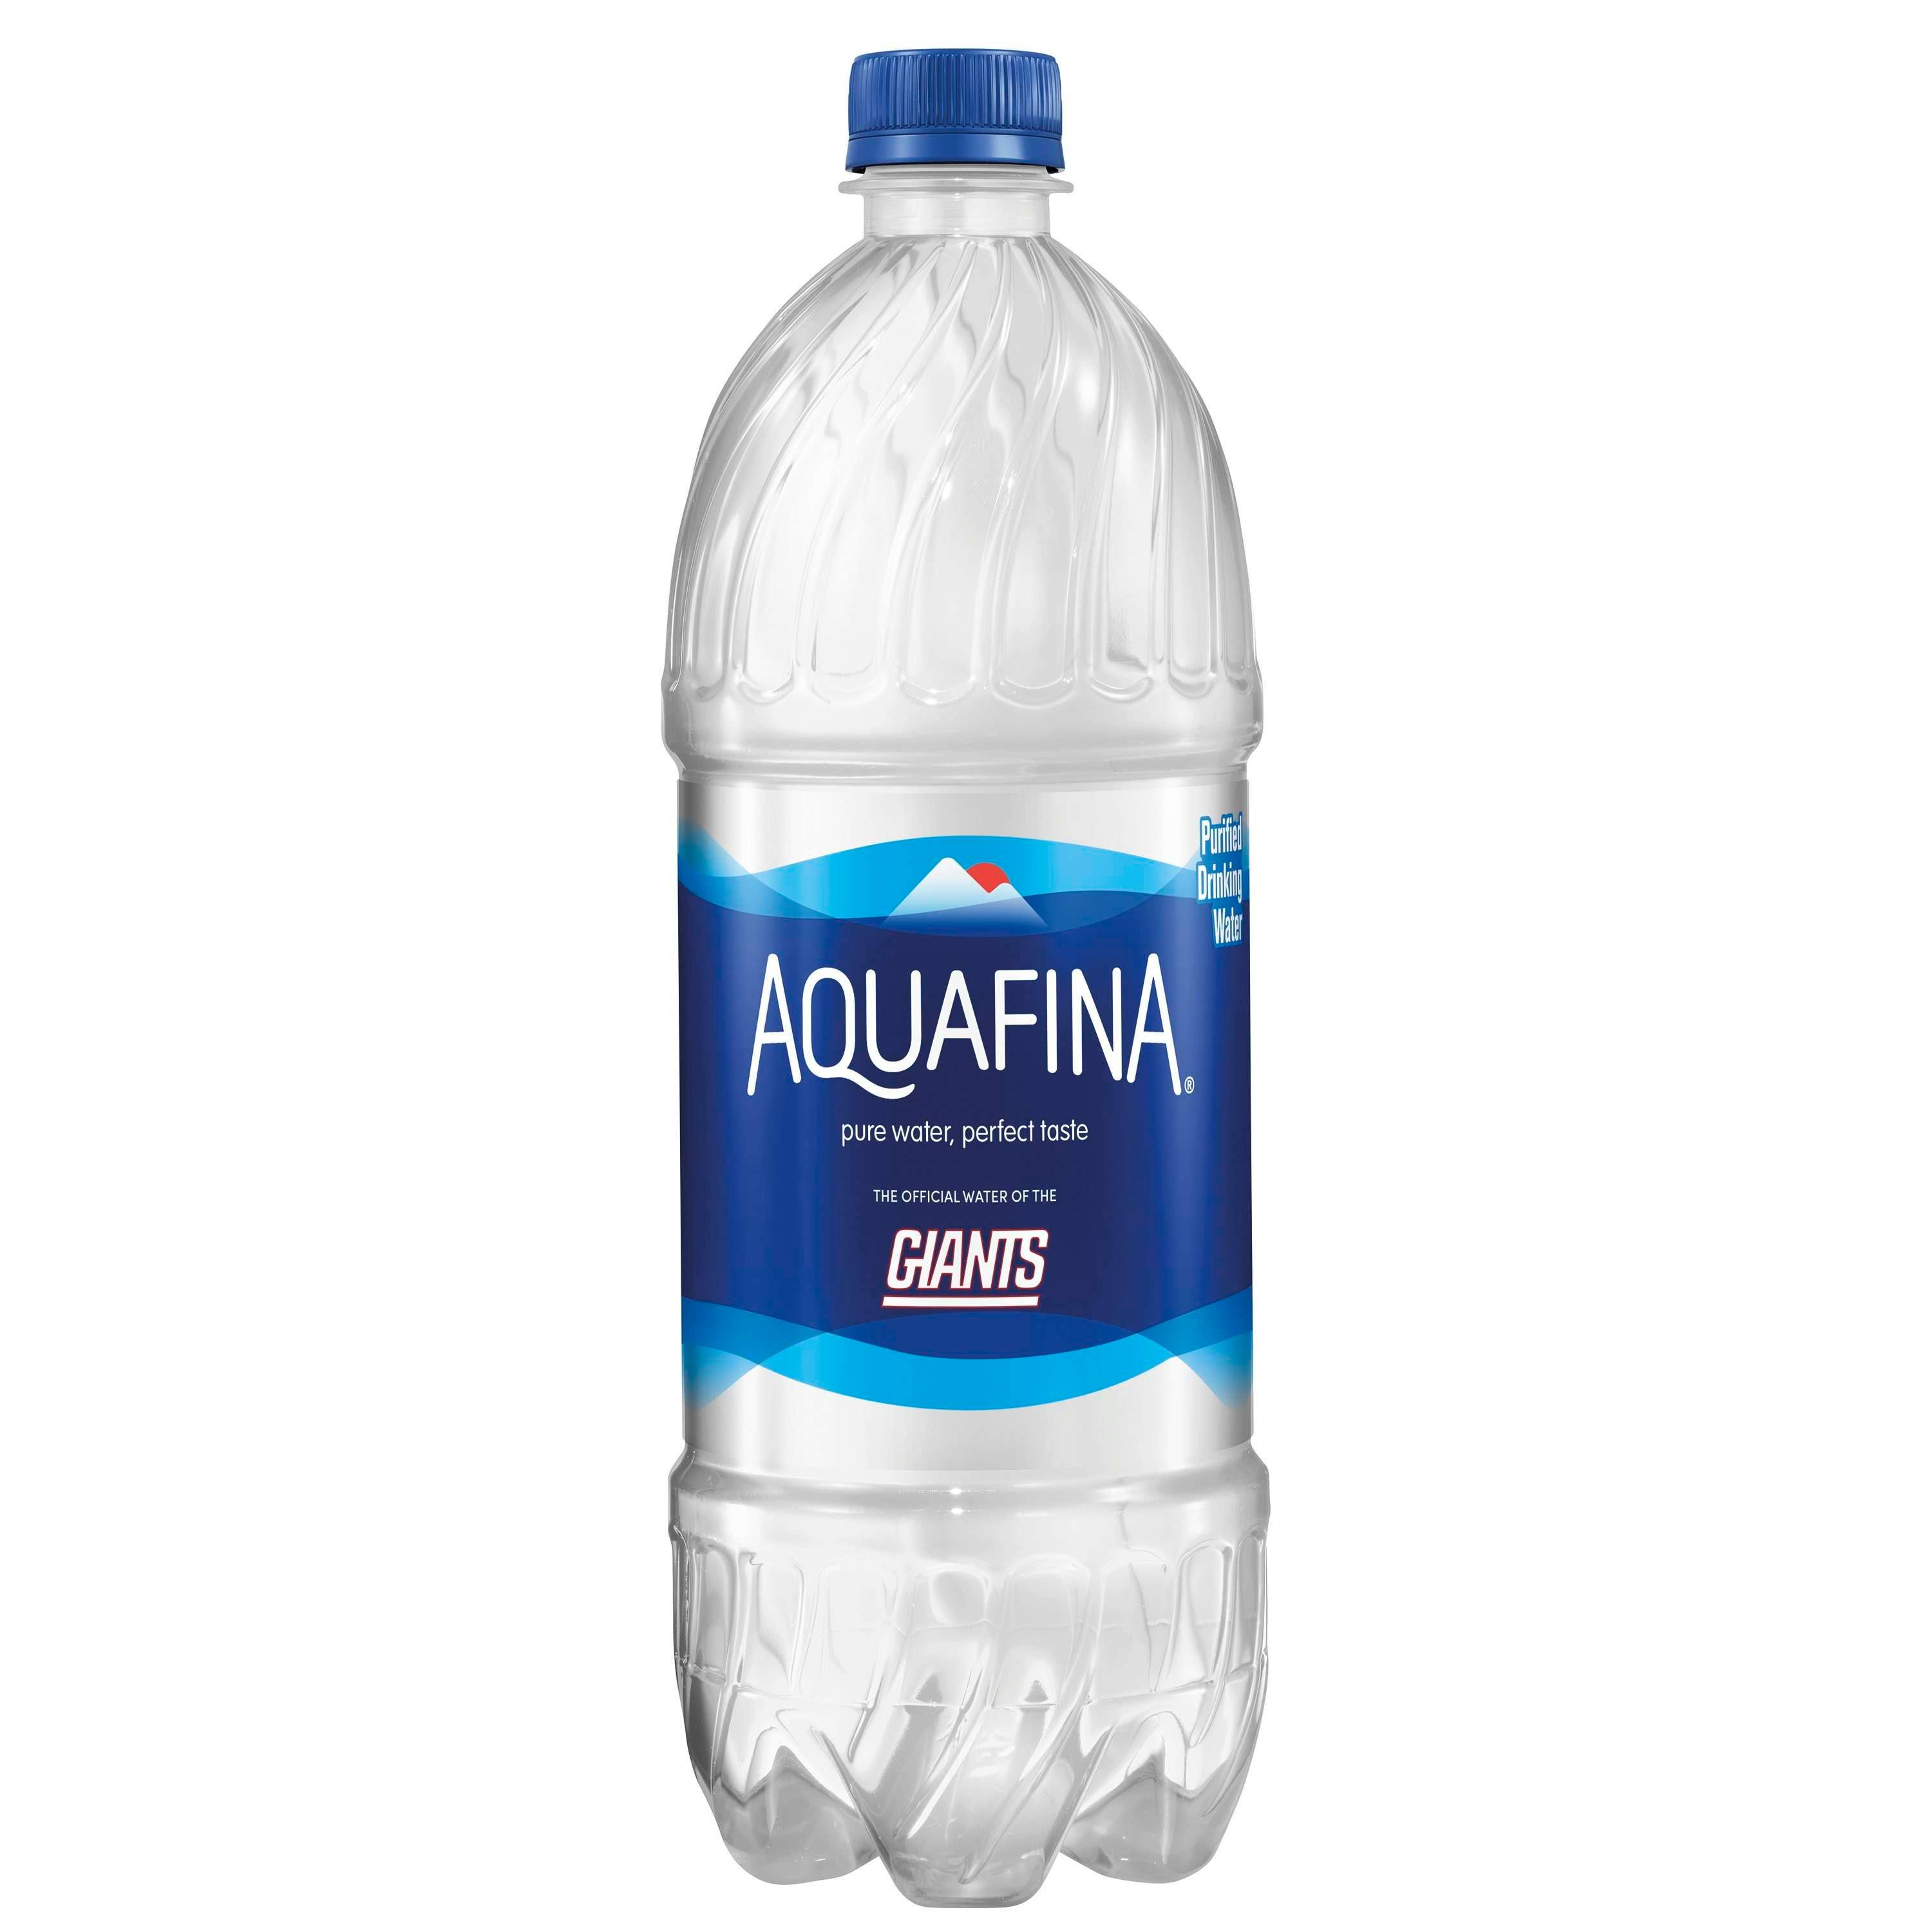 Aquafina Drinking Water - 1 Liter